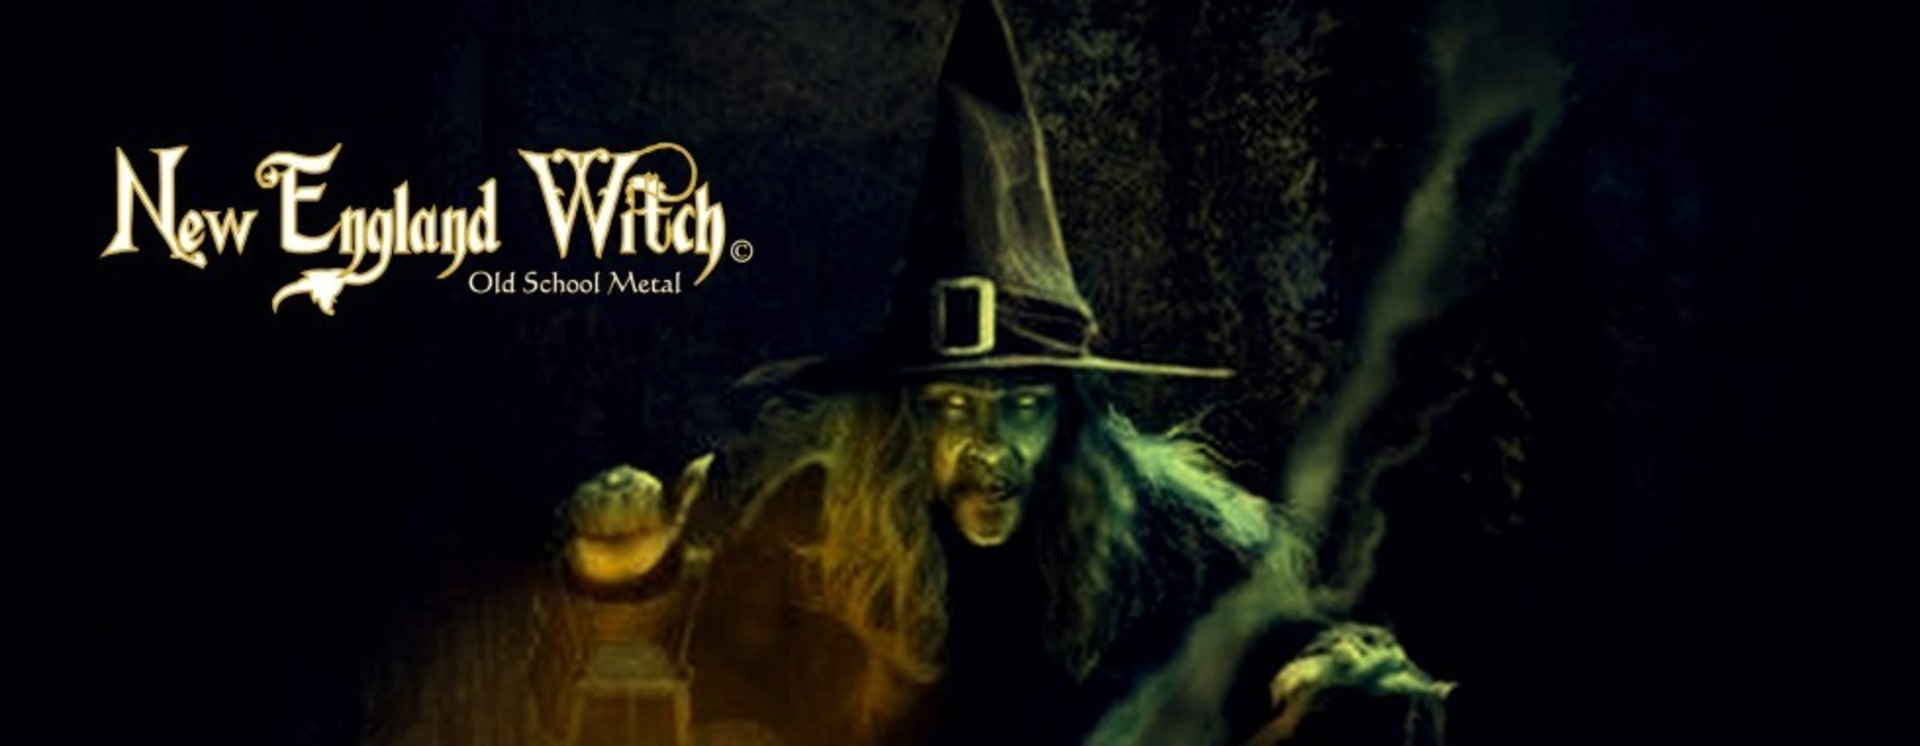 Witch banner big copy